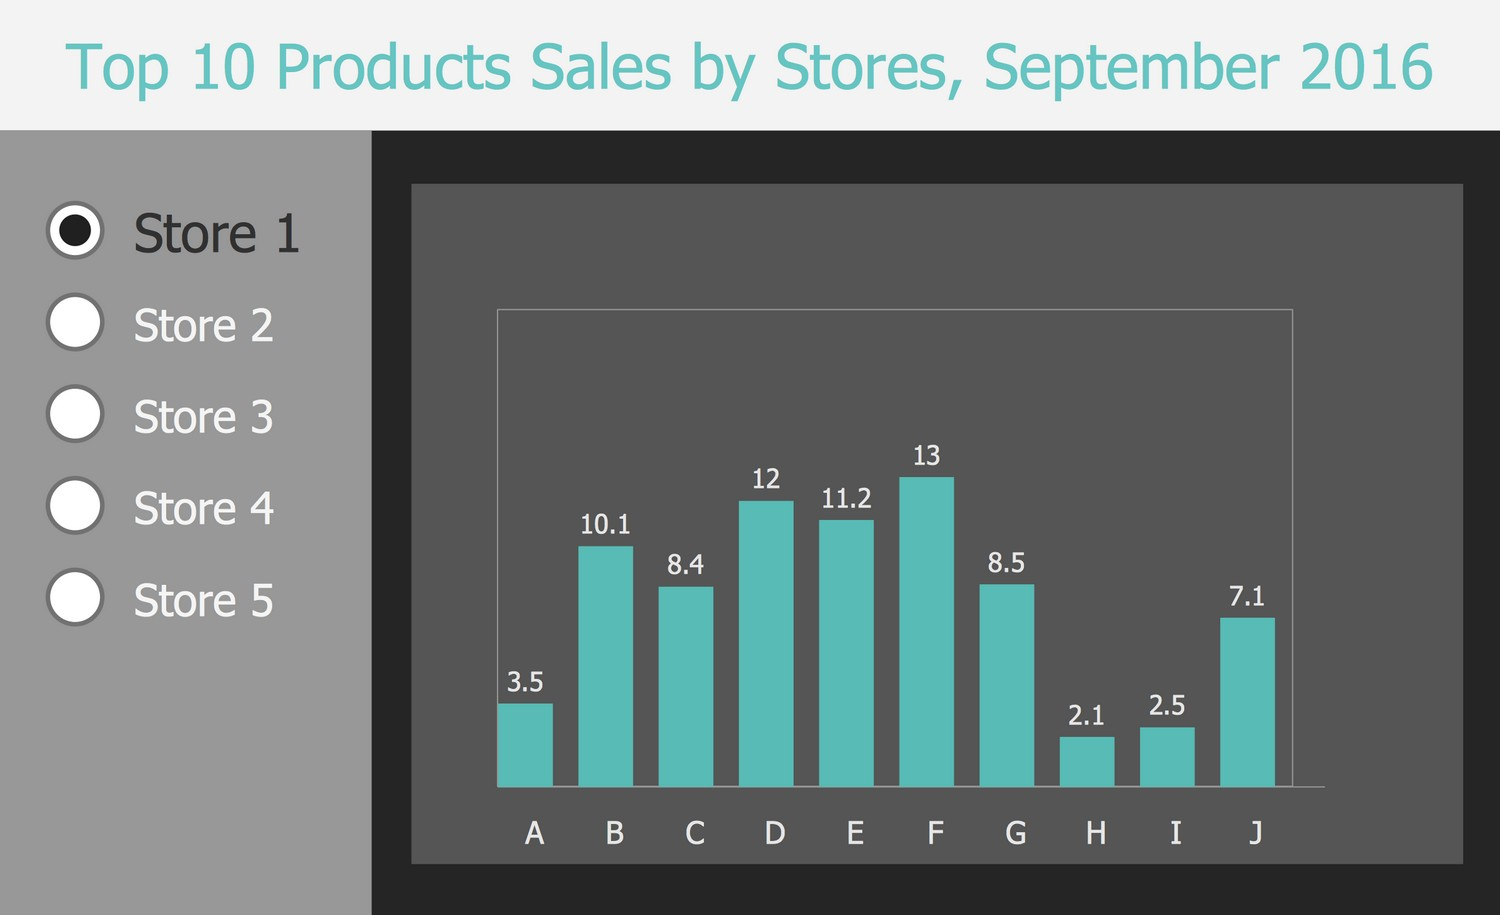 Business Intelligence Dashboard - Top 10 Products Sales by Stores, September 2016